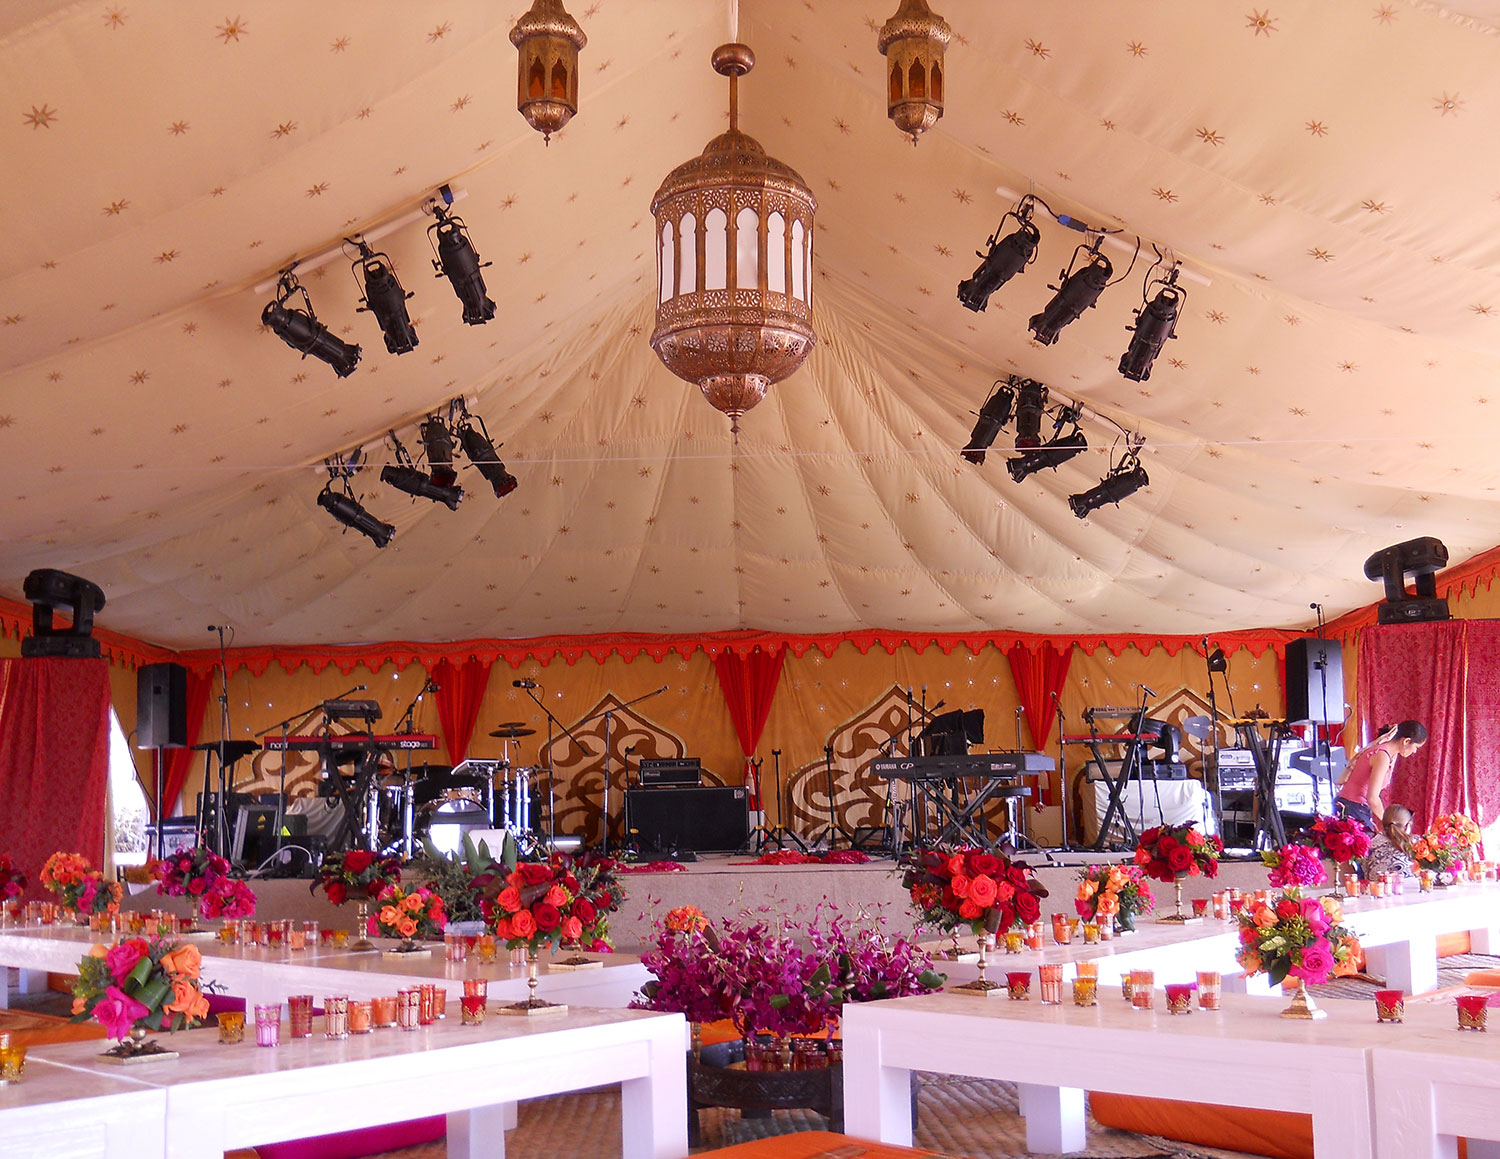 raj-tents-destination-weddings-stage-setting.jpg